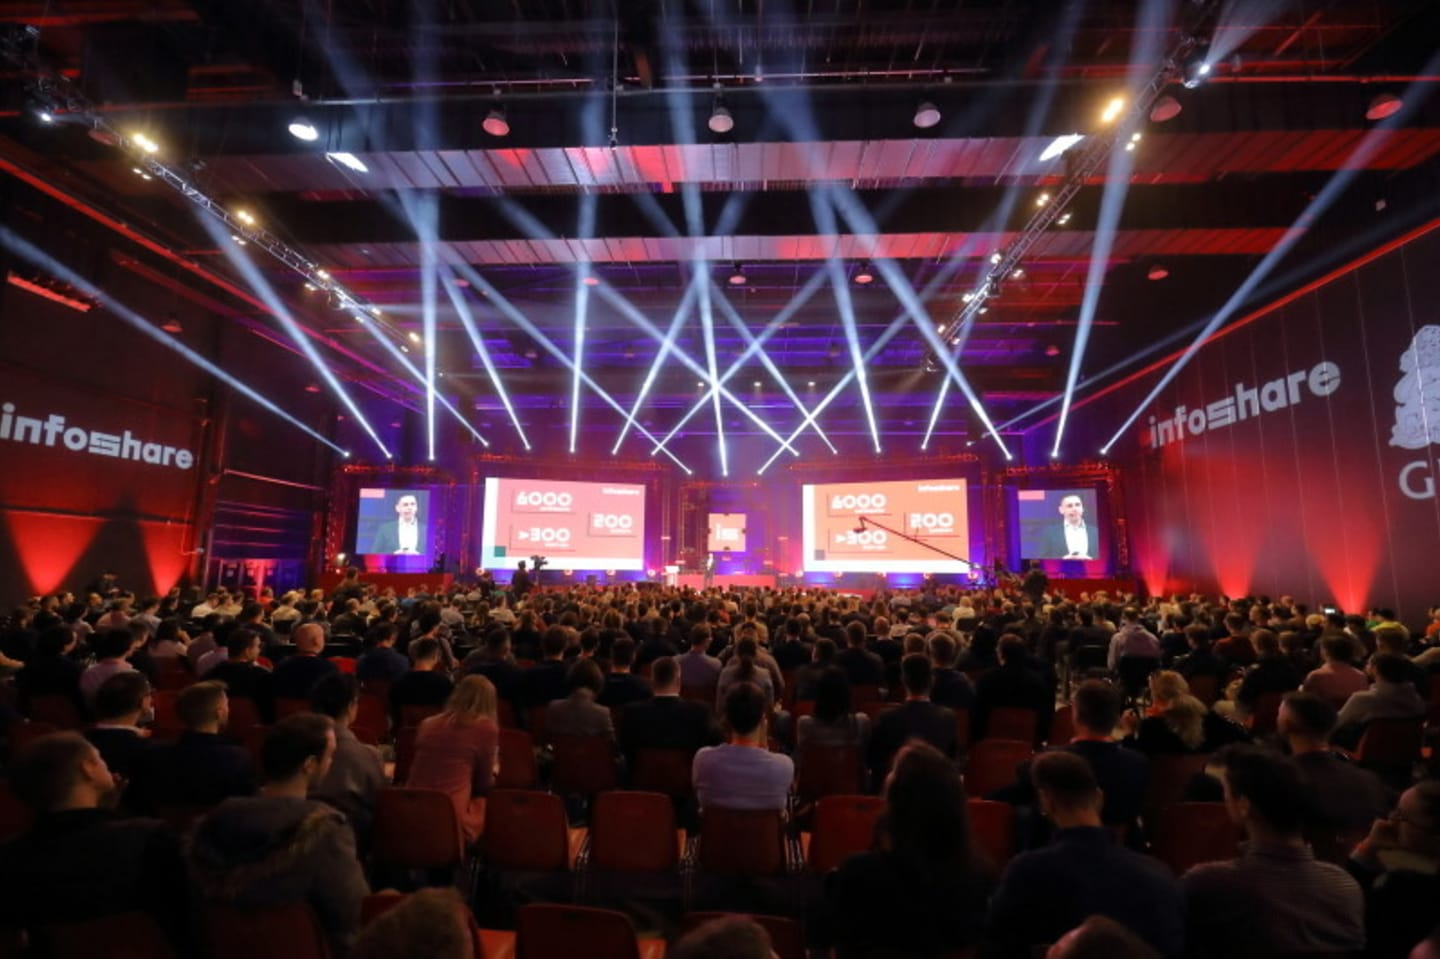 A photograph of a packed conference hall at infoshare.